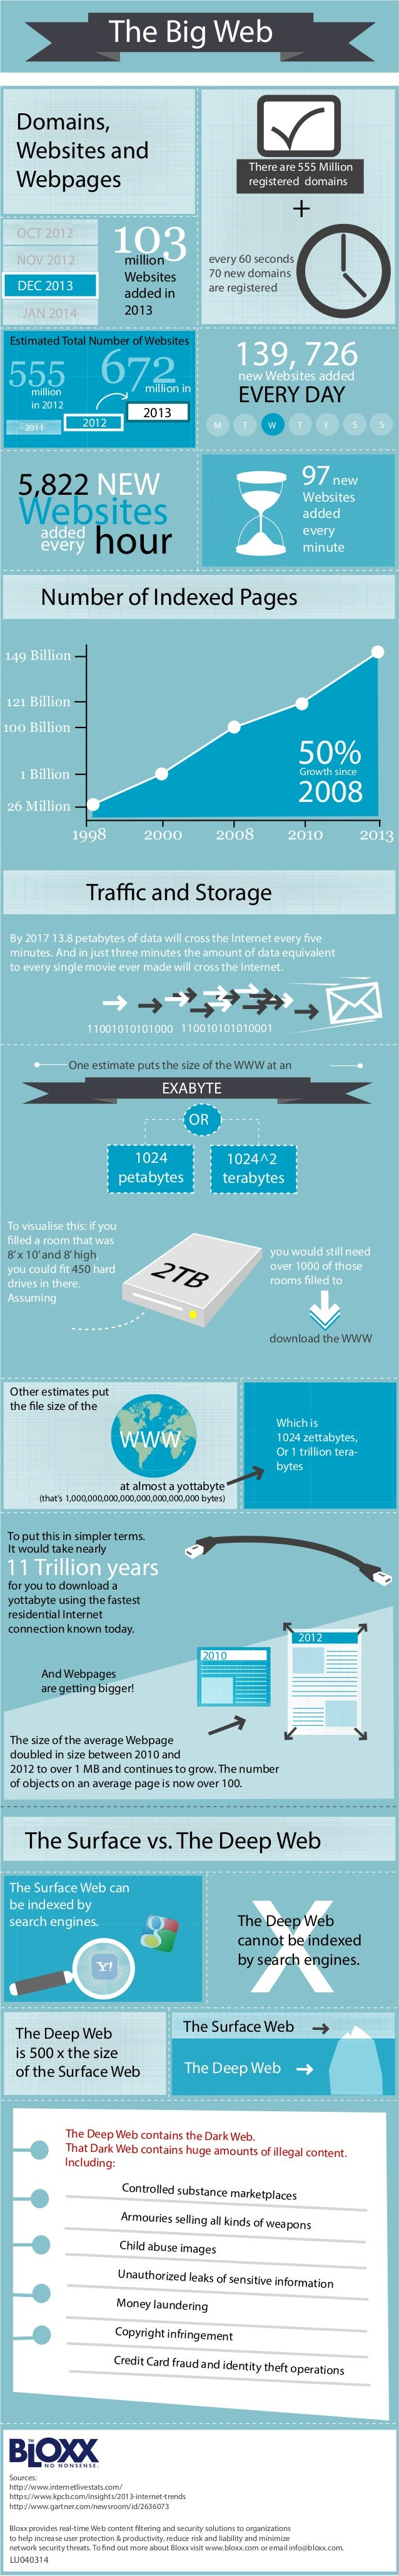 new Websites added new Websites added every minute EVERY DAY 139, 726 million in 2012 555 The Big Web Domains, Websites an...